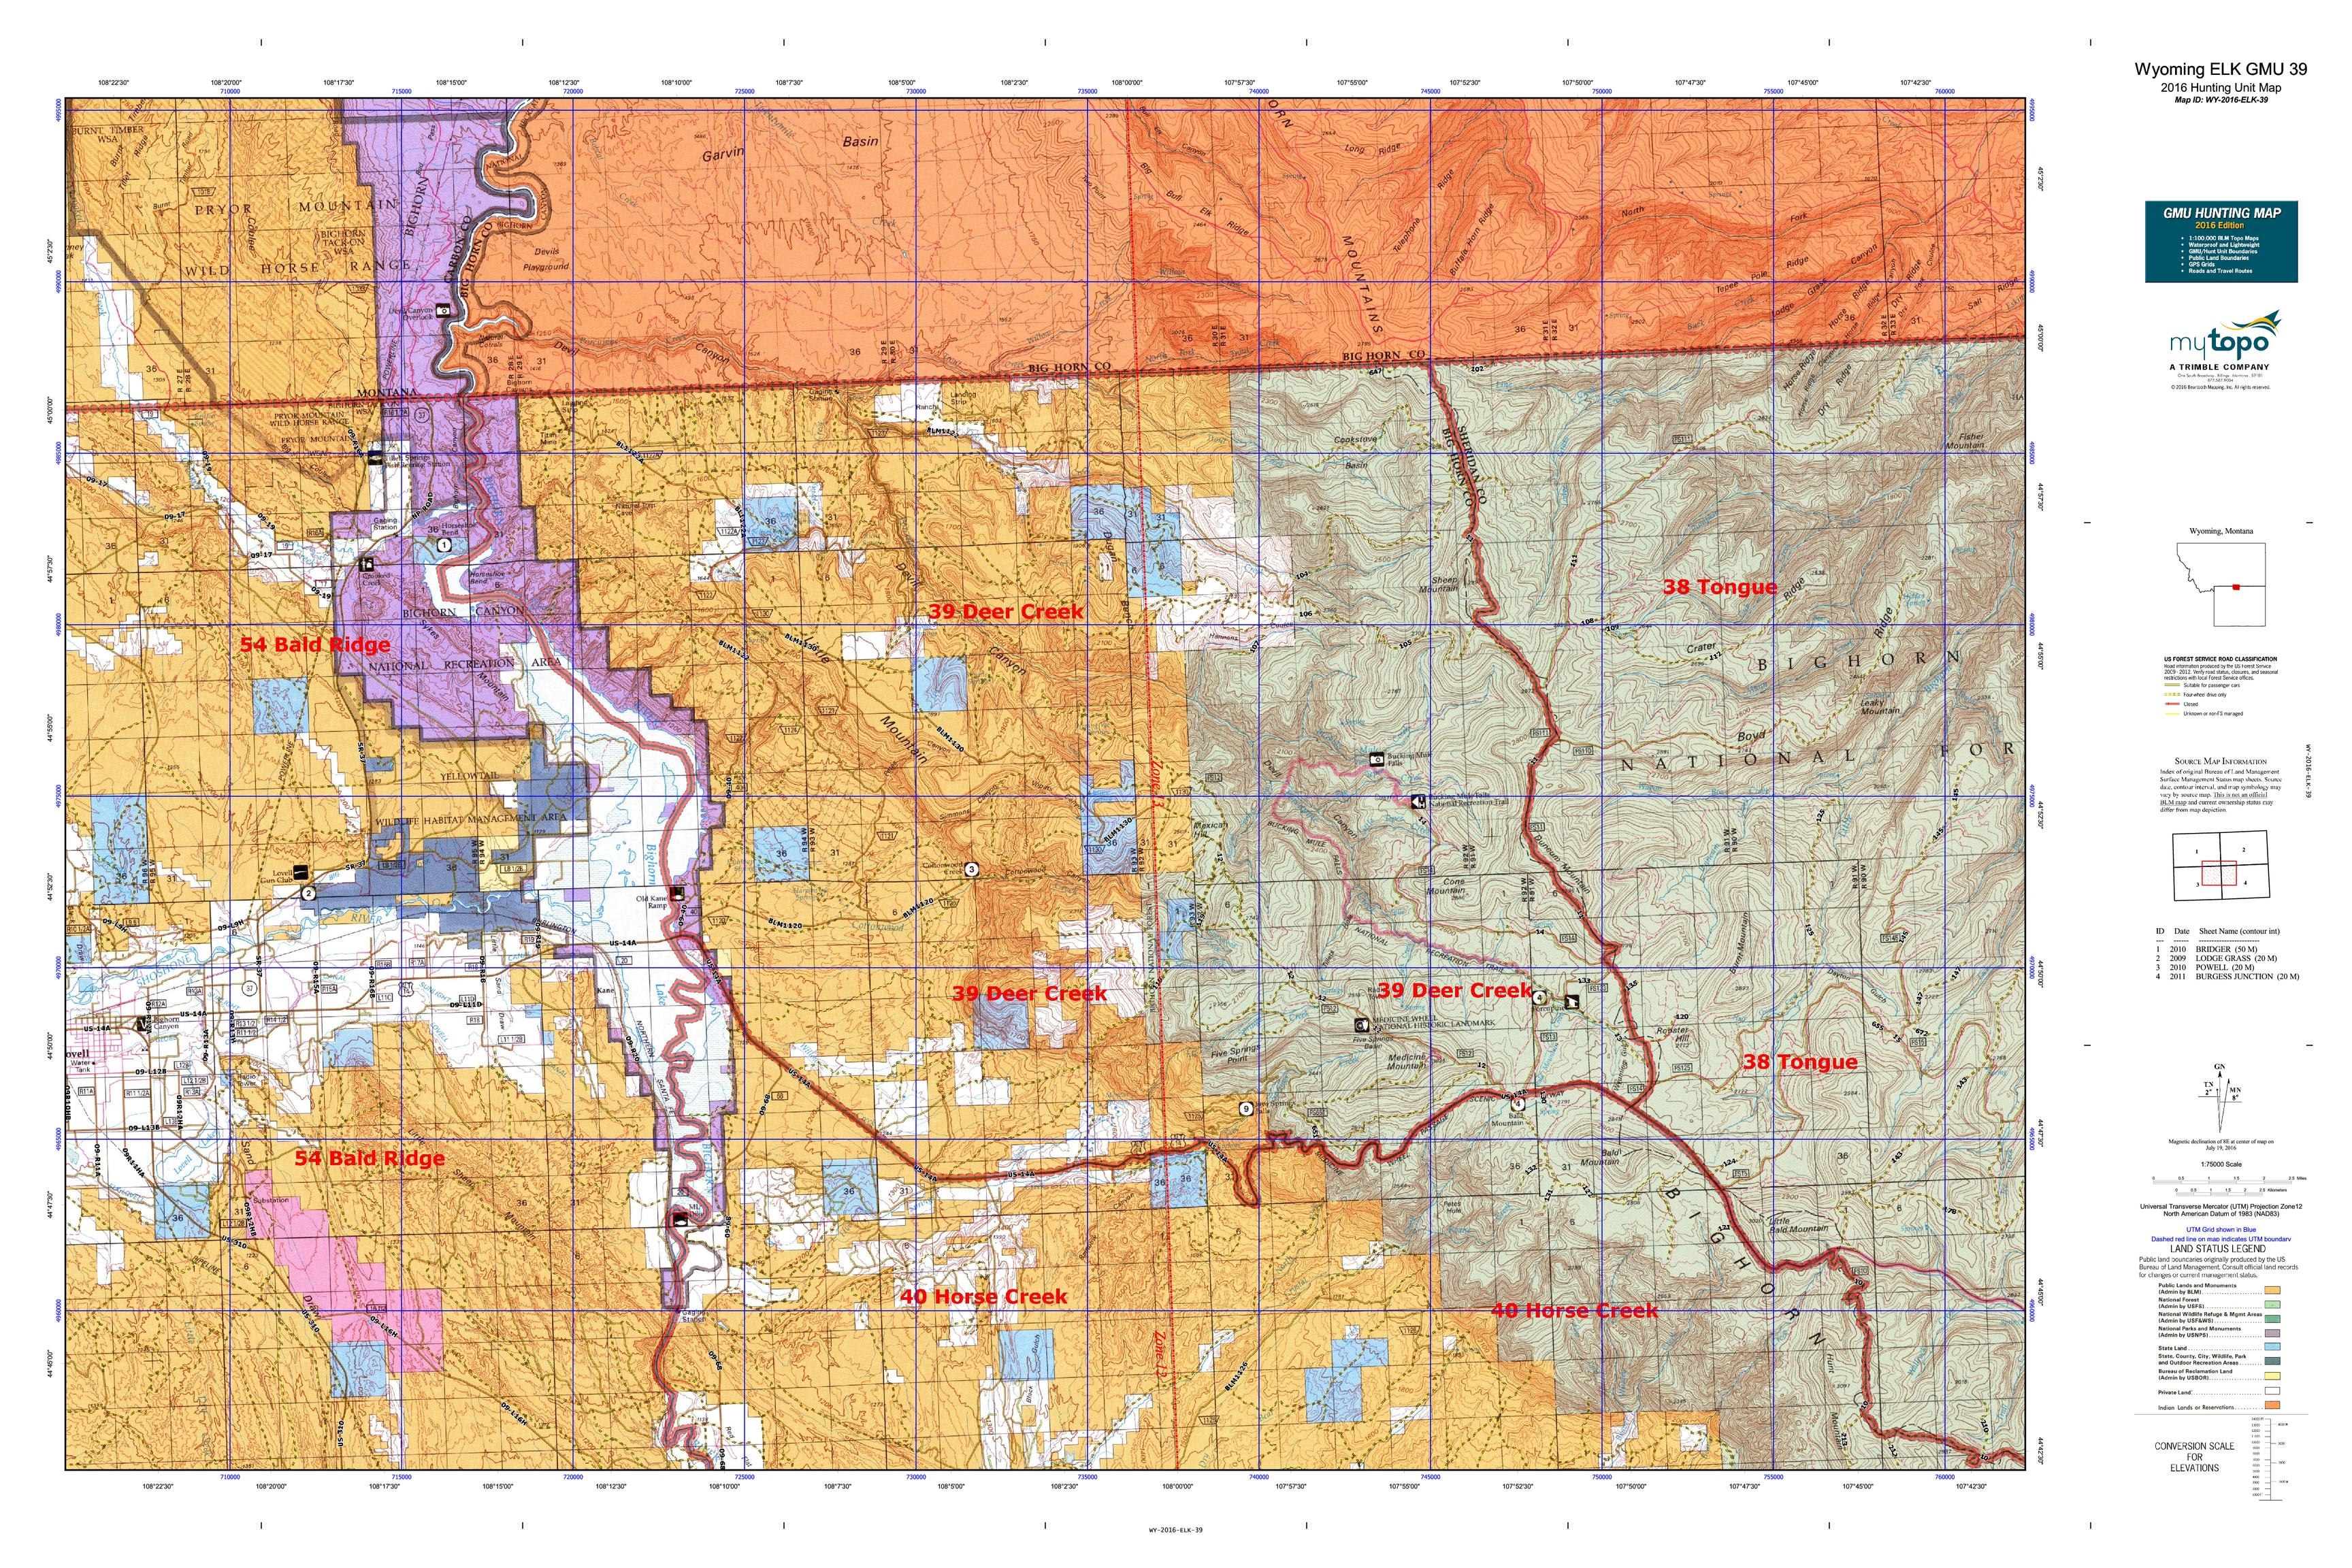 39 Best Images About South Pacific On Pinterest: Wyoming ELK GMU 39 Map